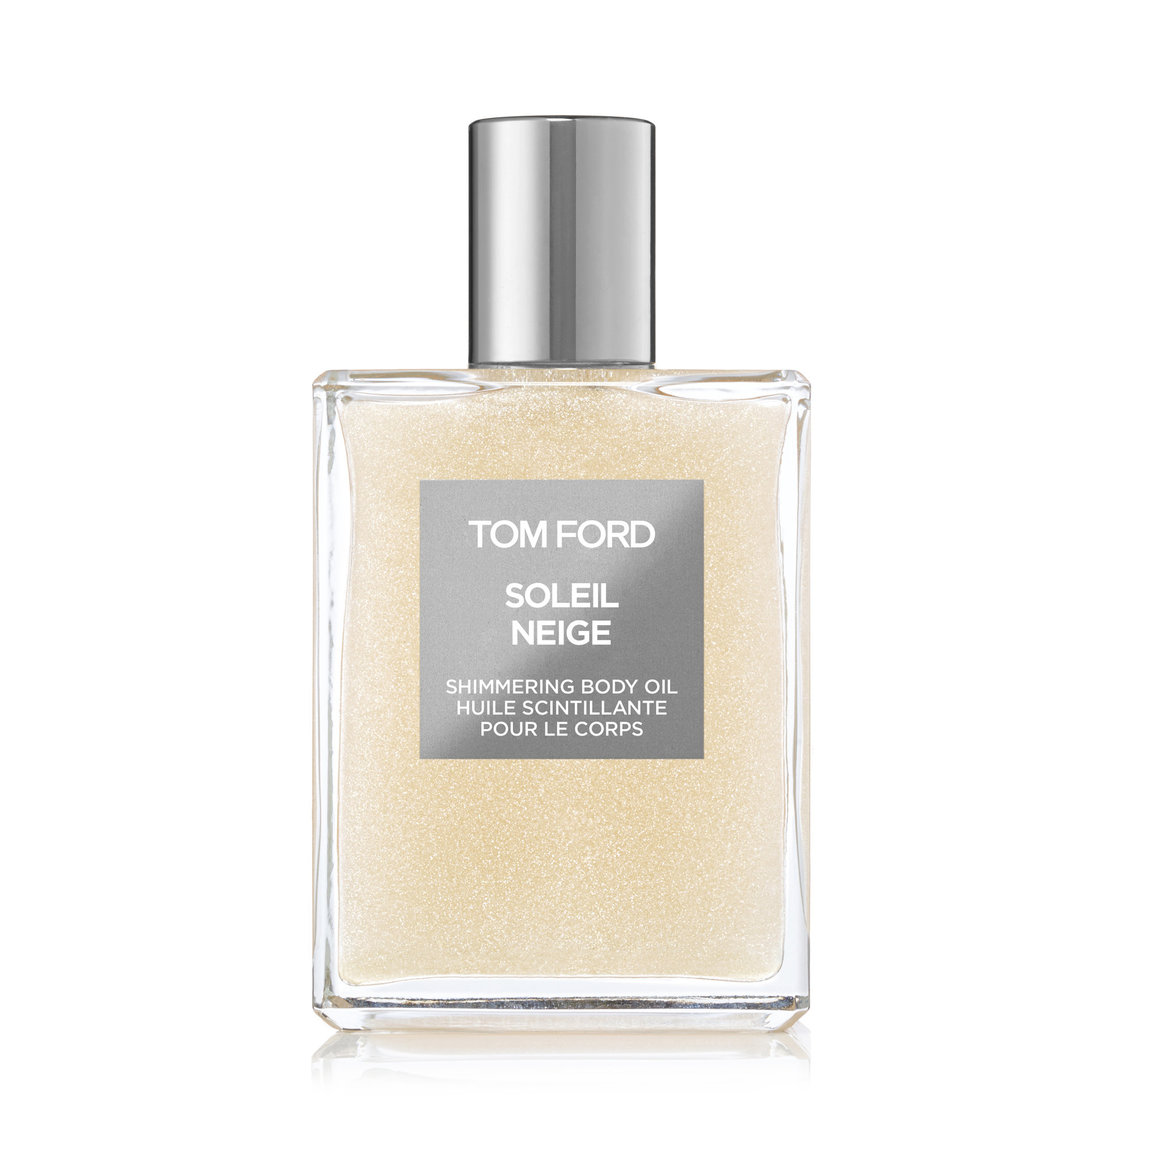 TOM FORD Soleil Neige Shimmering Body Oil product swatch.